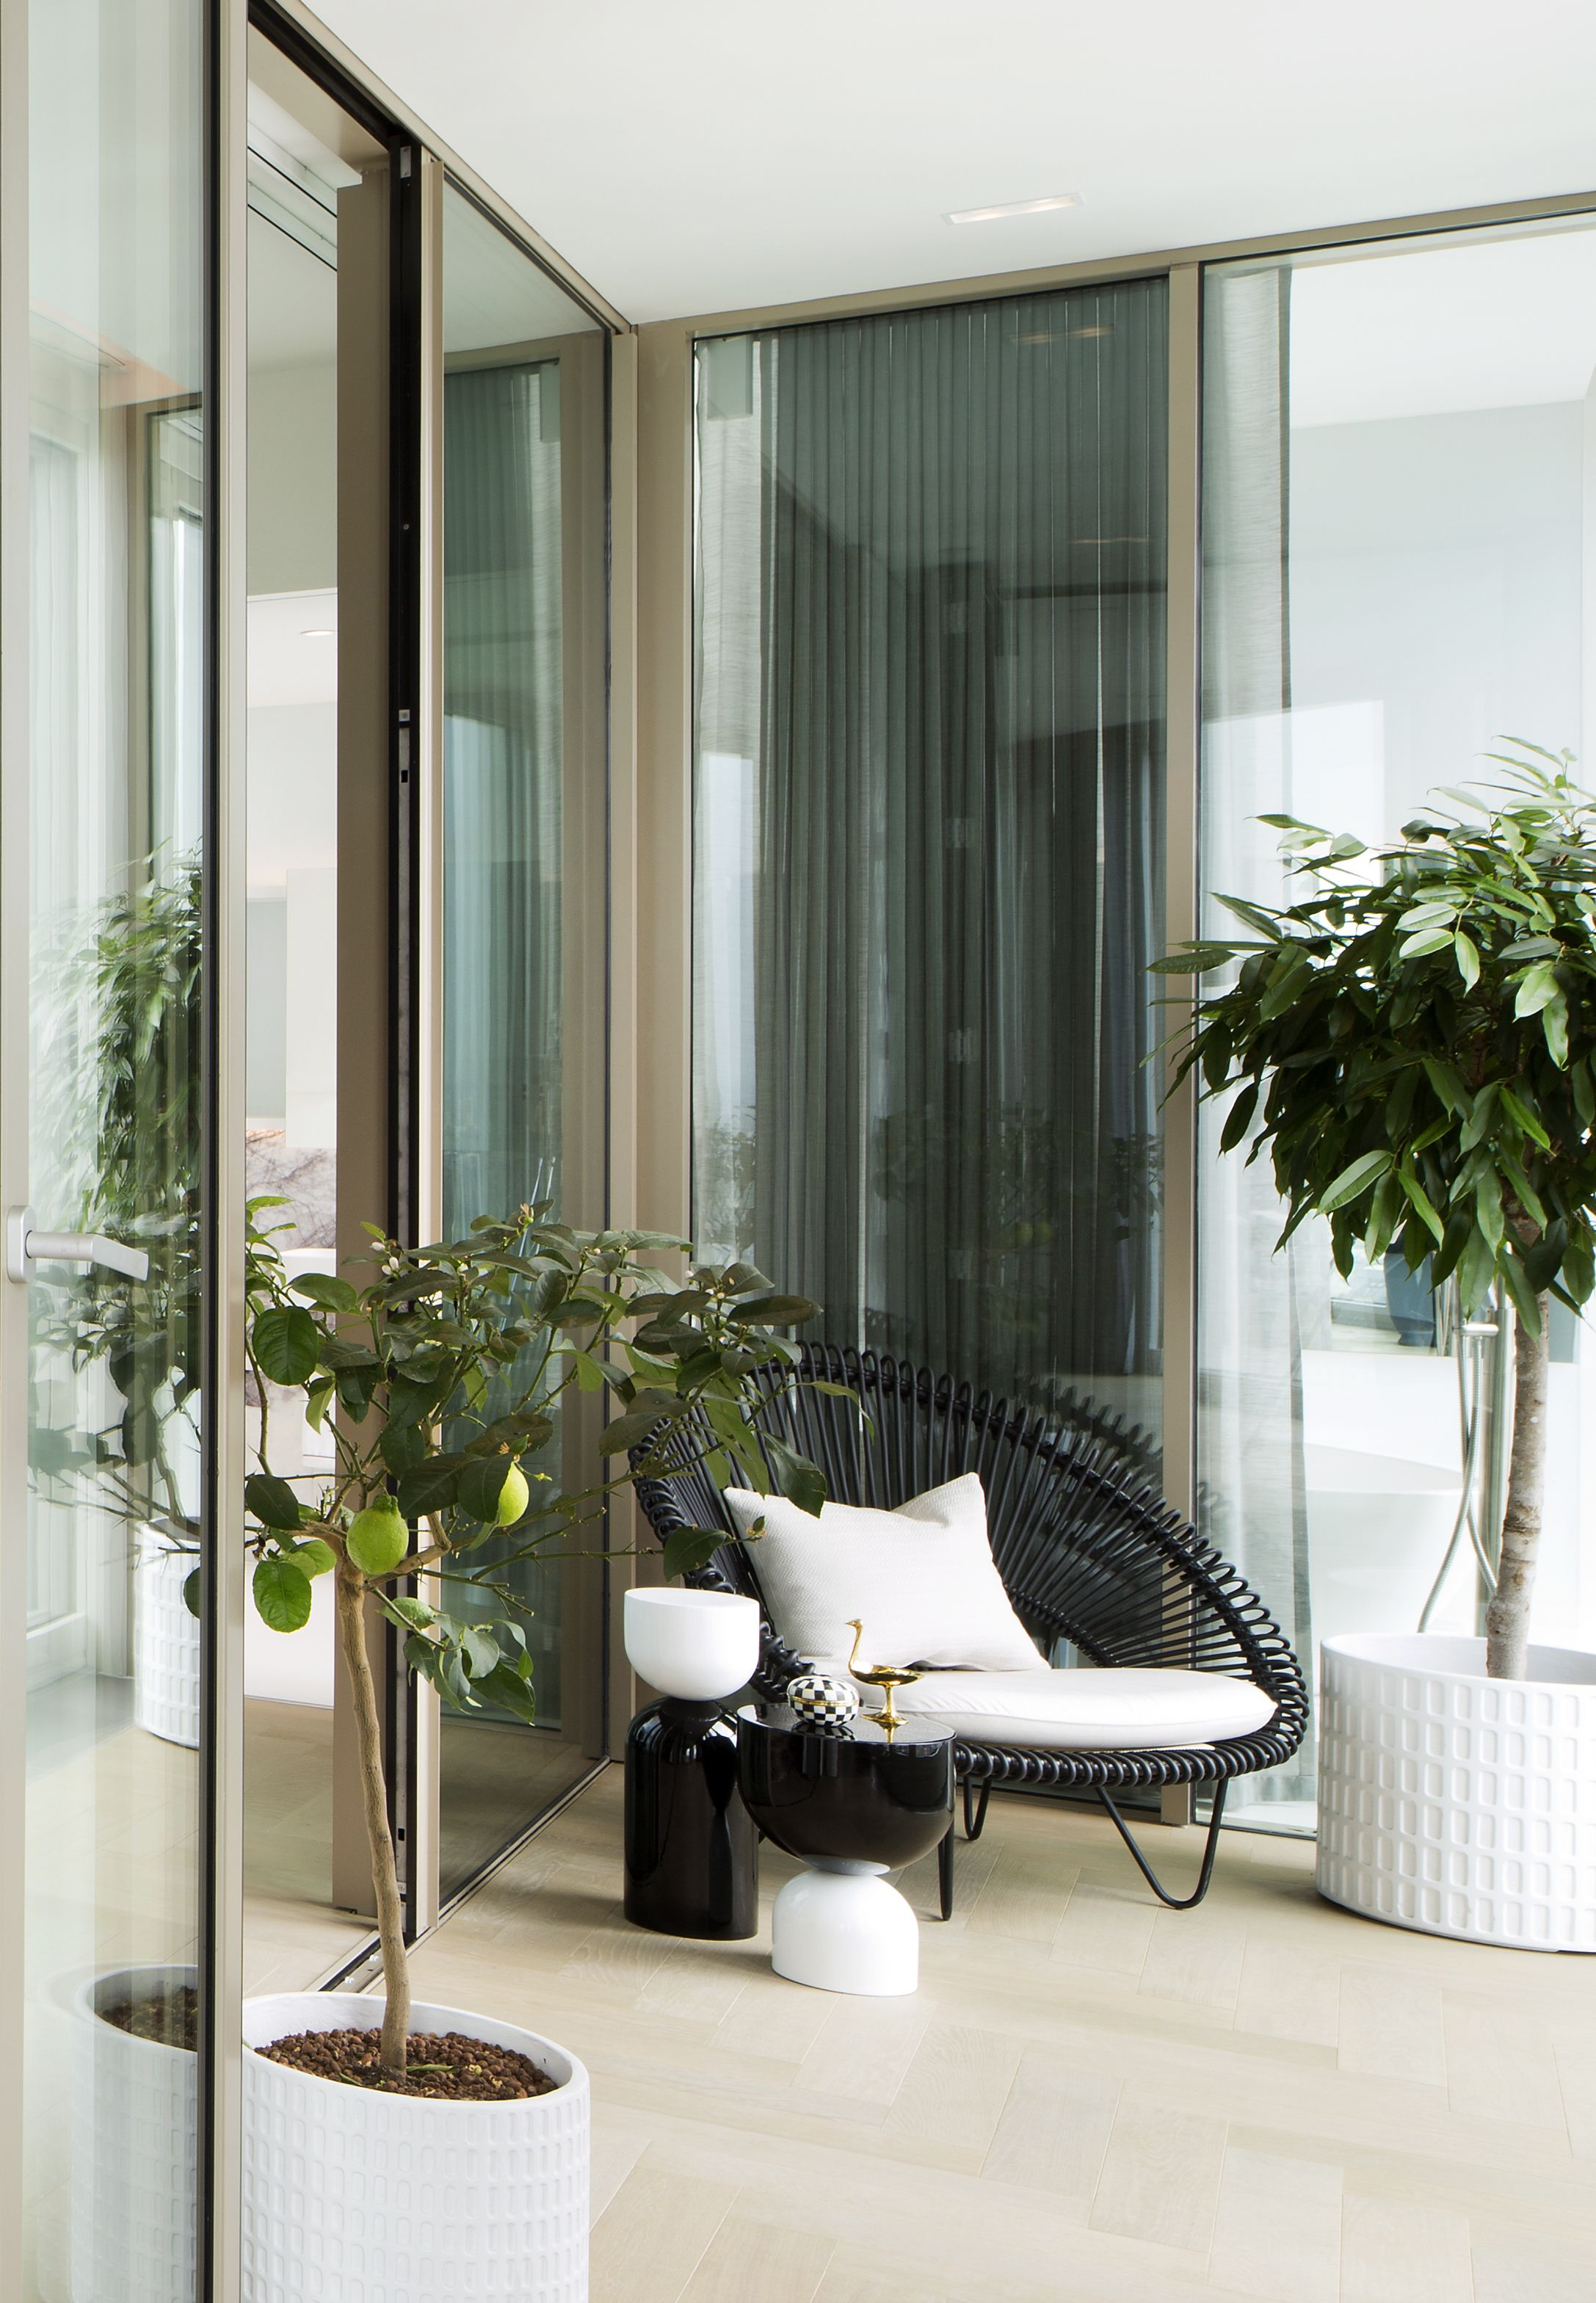 this winter garden occupies the 37th floor of a contemporary